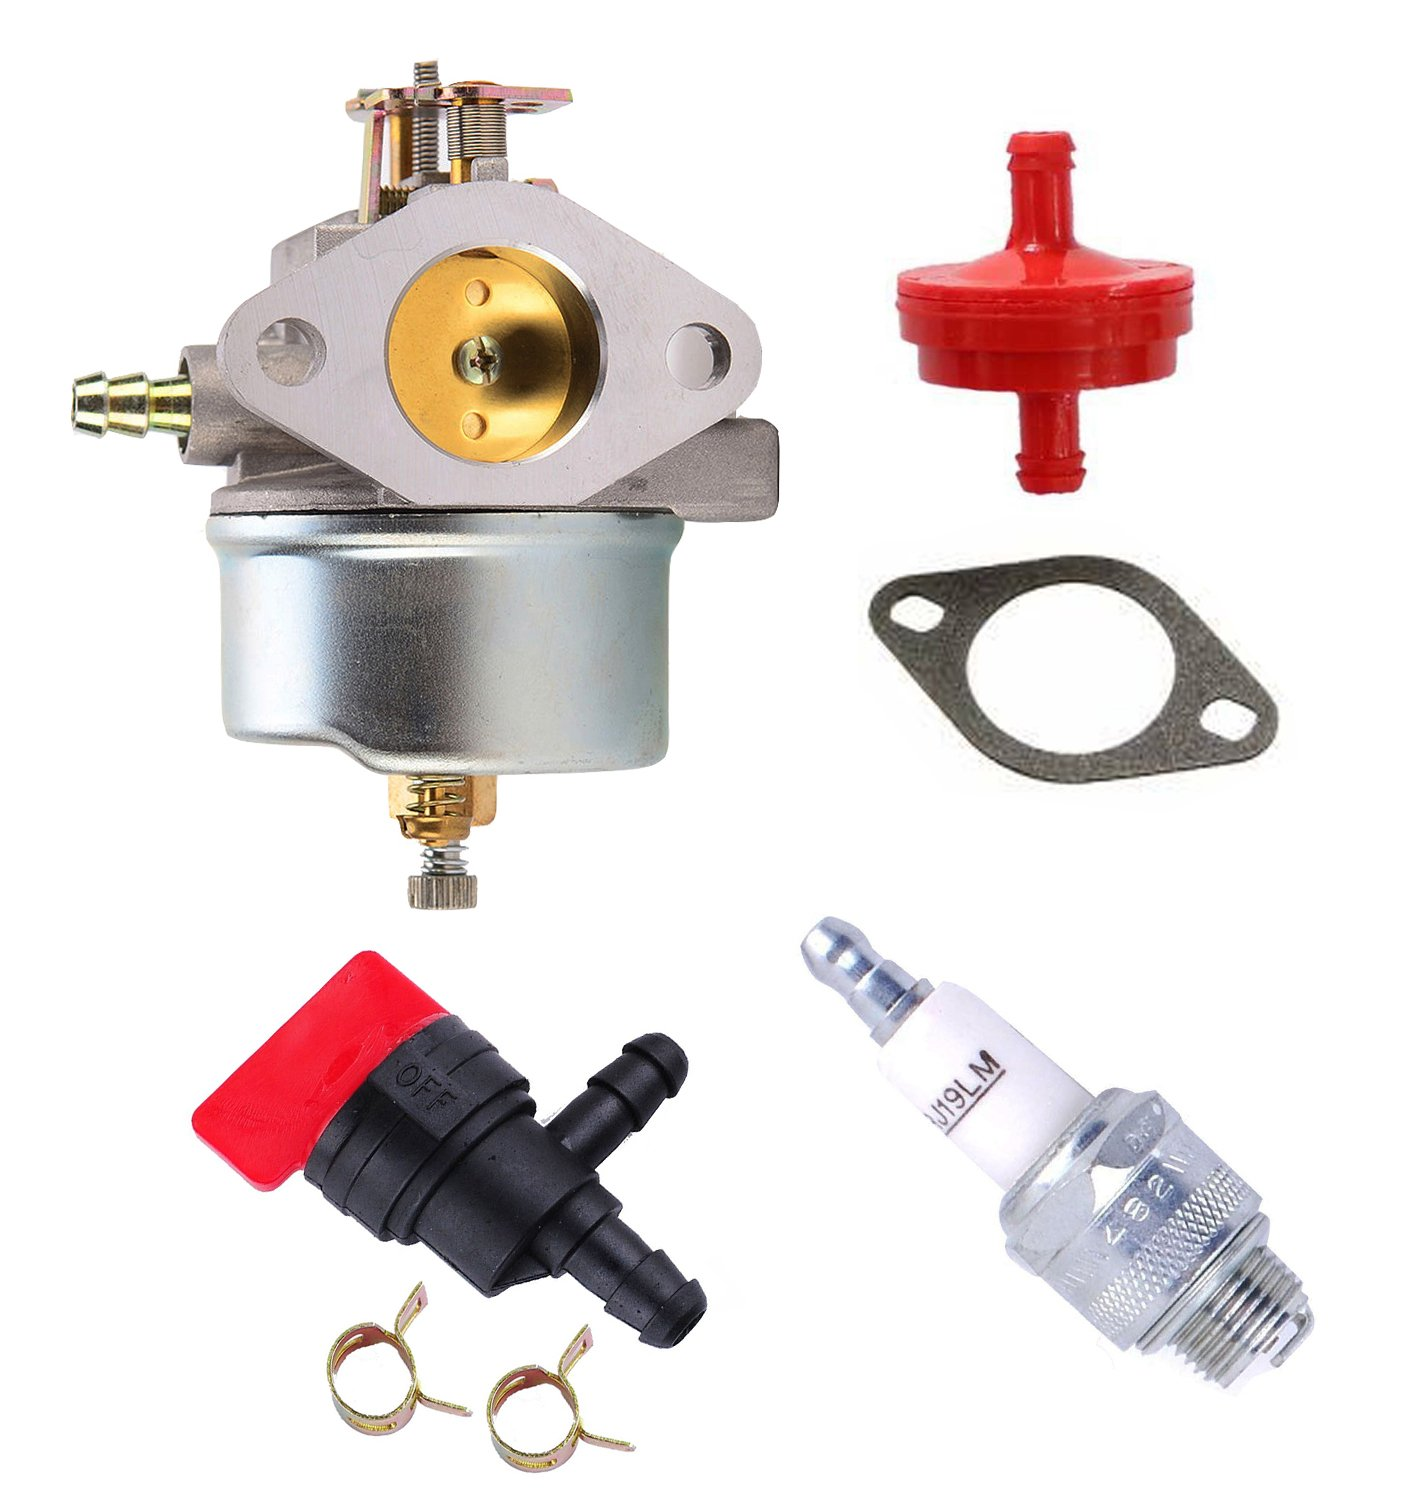 Amazon.com: Podoy 632334A Carburetor with Spark Plug Fuel Filter Kit For  Tecumseh 632334 632111 7hp 8hp 9hp HM70 HM80 HMSK80 HMSK90 Replaces 38080  824 ...